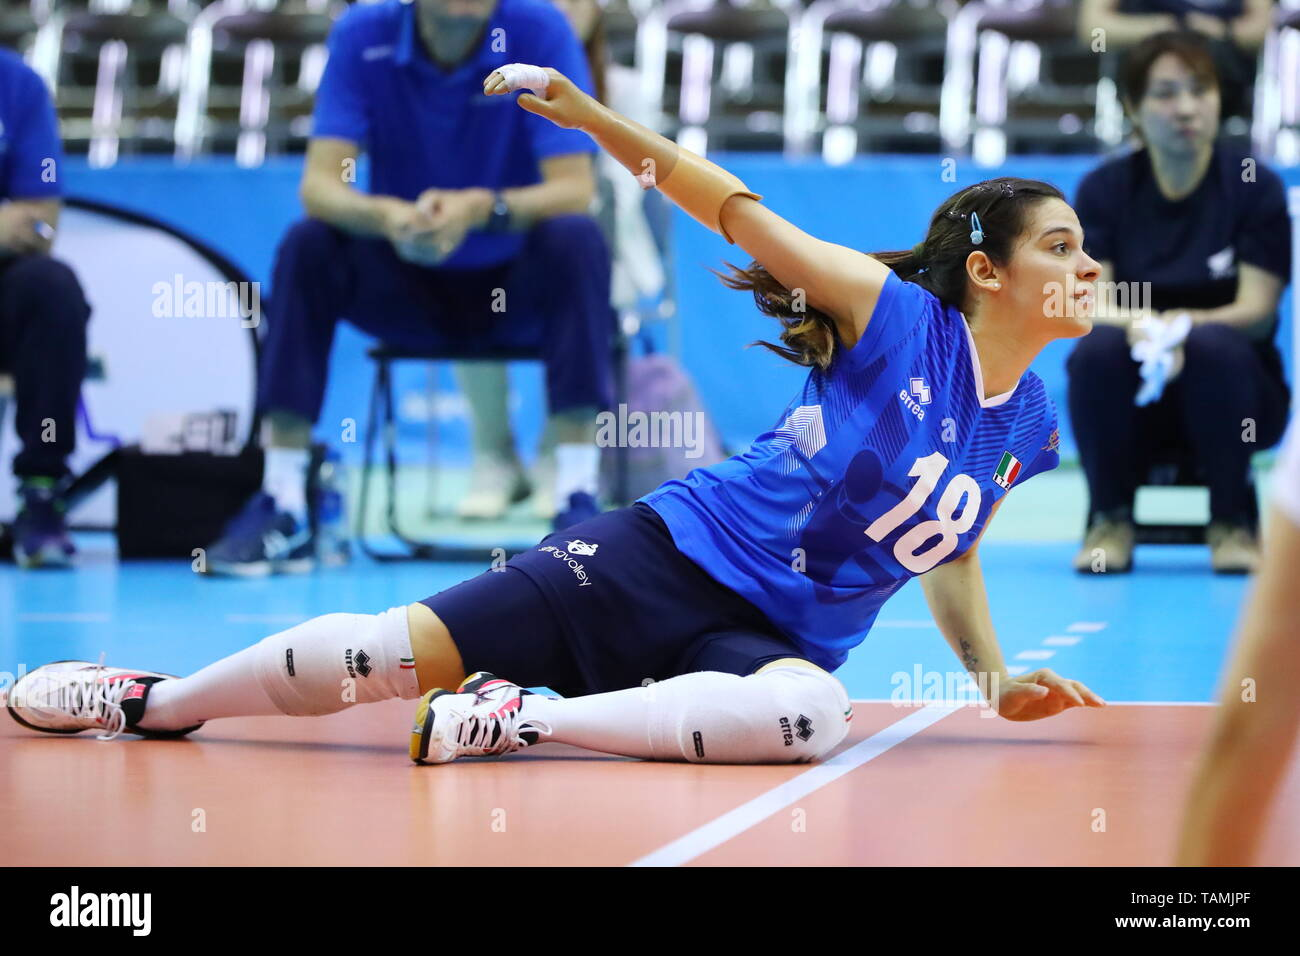 Image result for Italy's Silvia Biasi